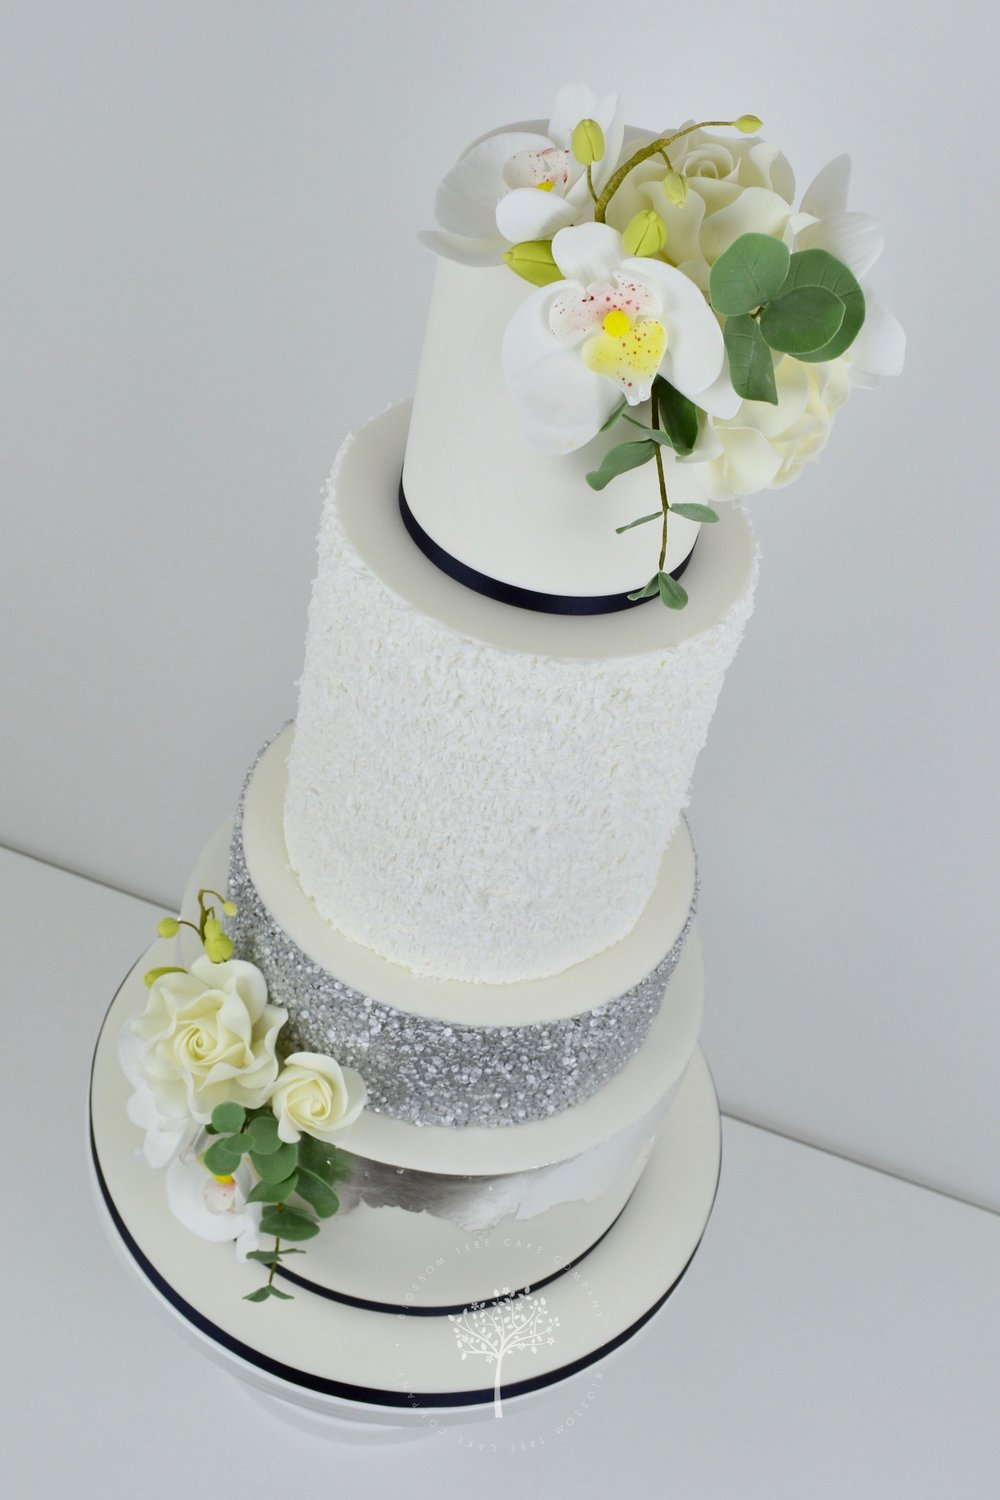 Silver Orchids wedding cake by Blossom Tree Cake Company Harrogate North Yorkshire - angle.jpg